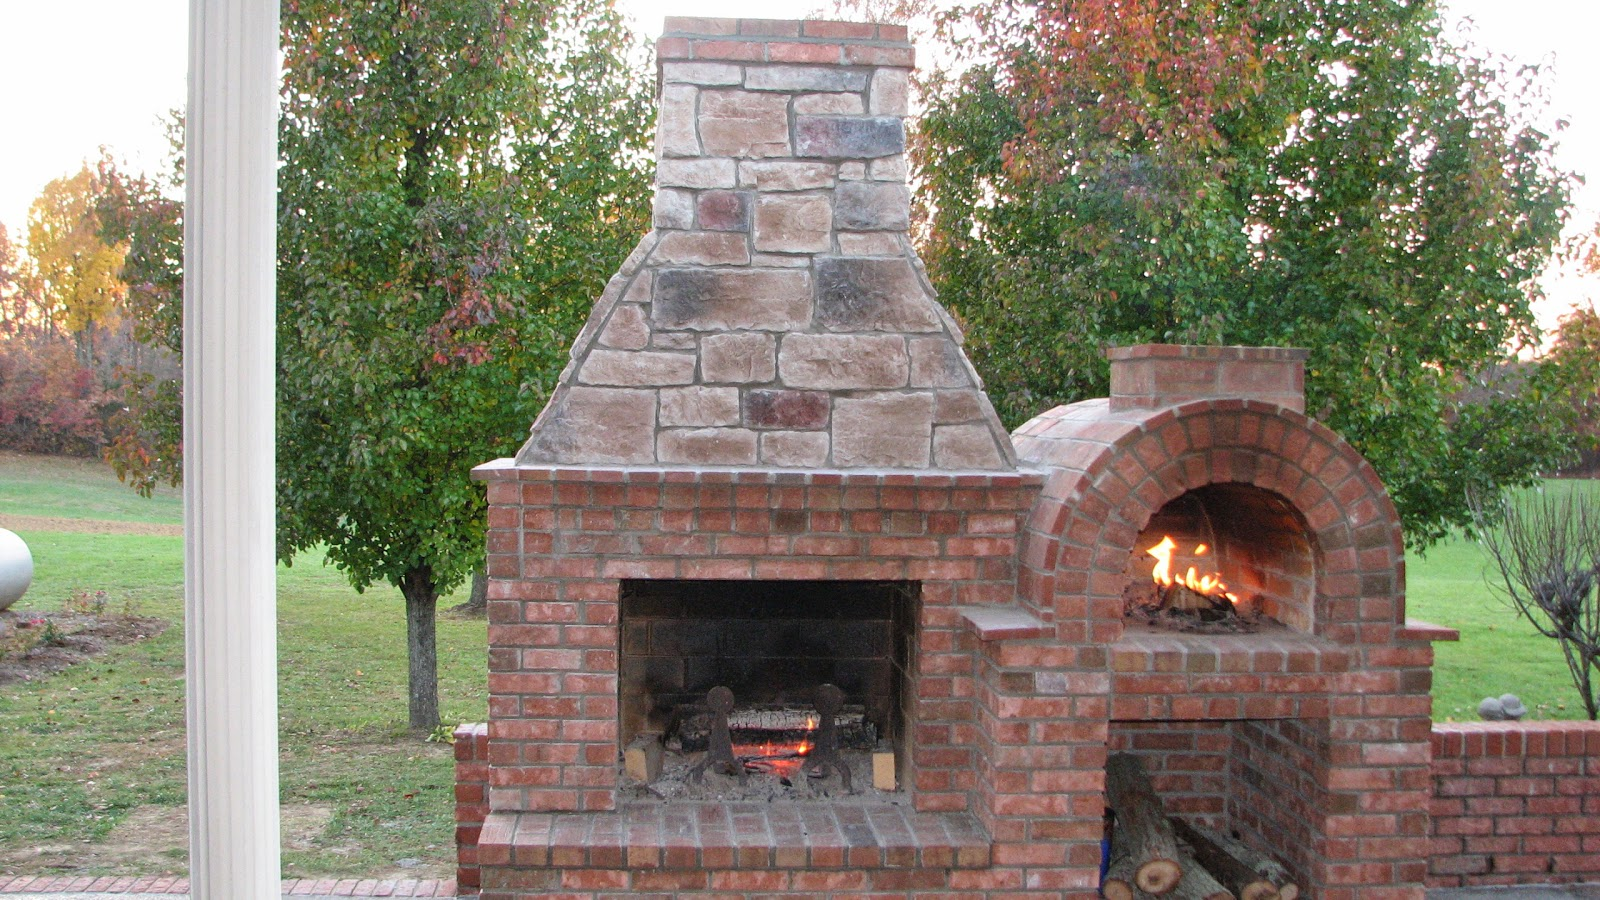 Backyard Brick Pizza Oven | Decodir